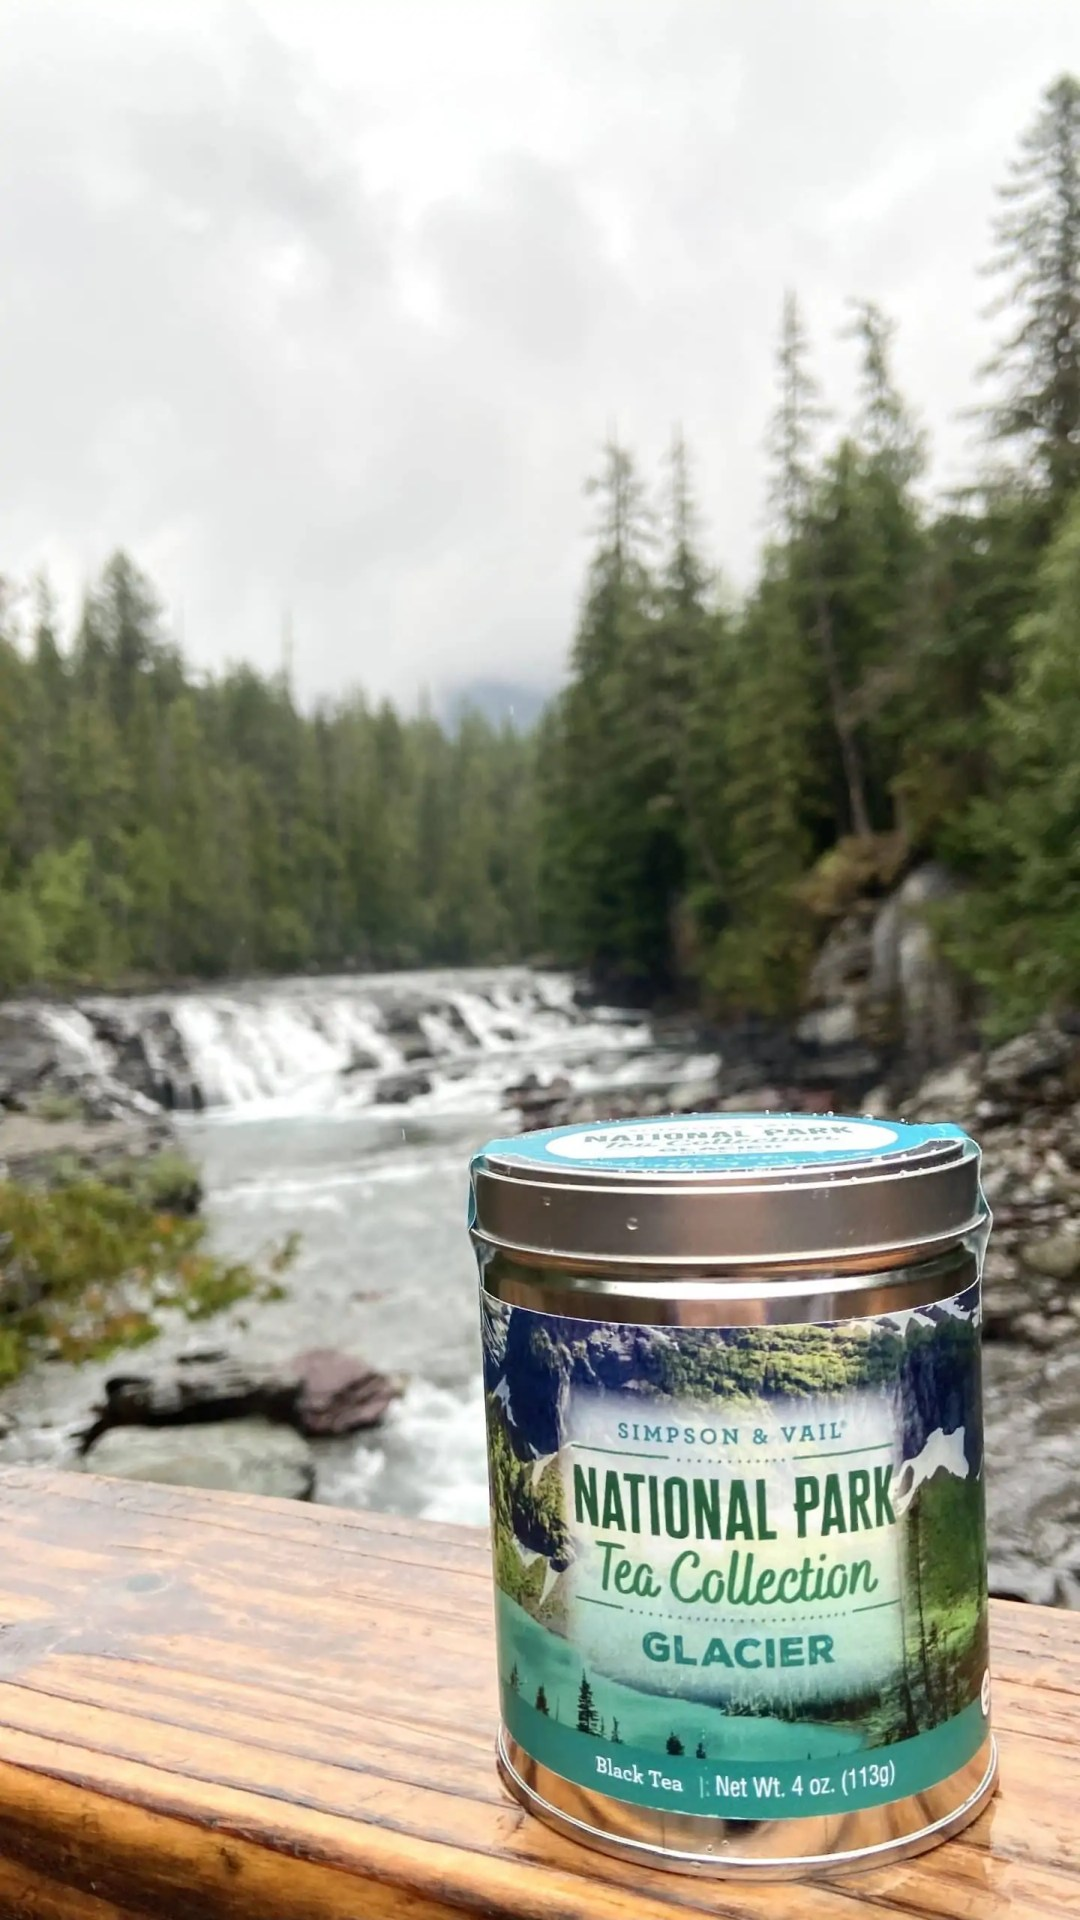 Tin of Glacier Tea in front of a river in a forest